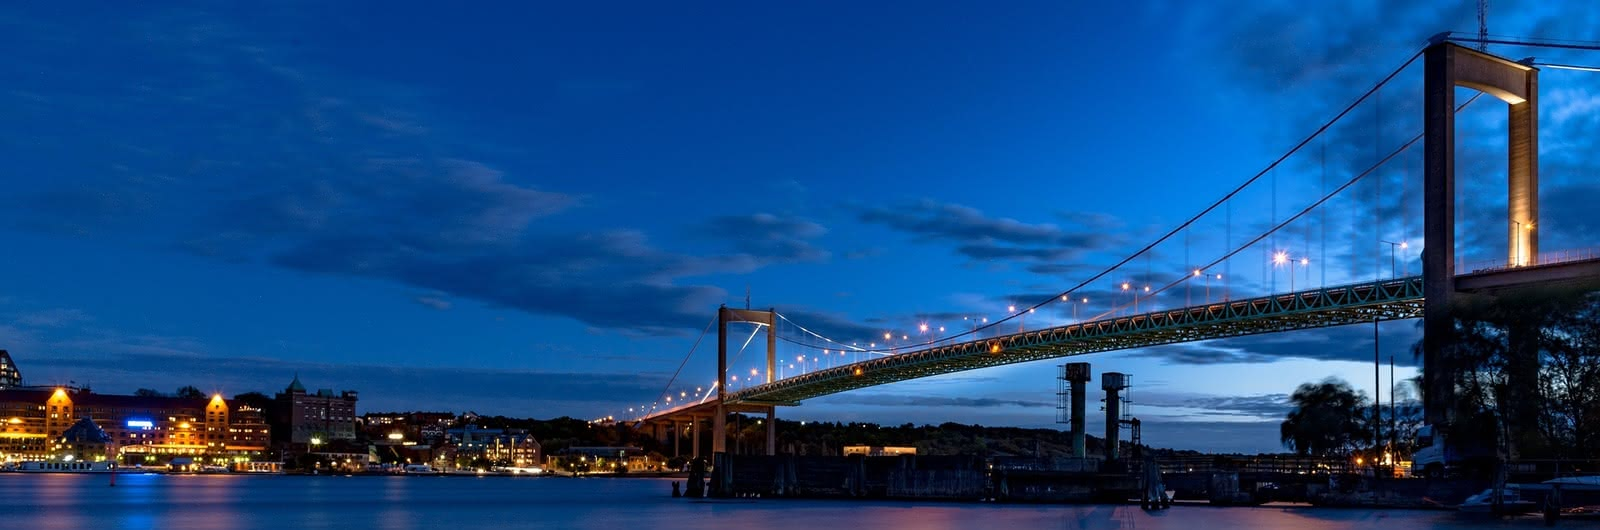 gothenburg city header